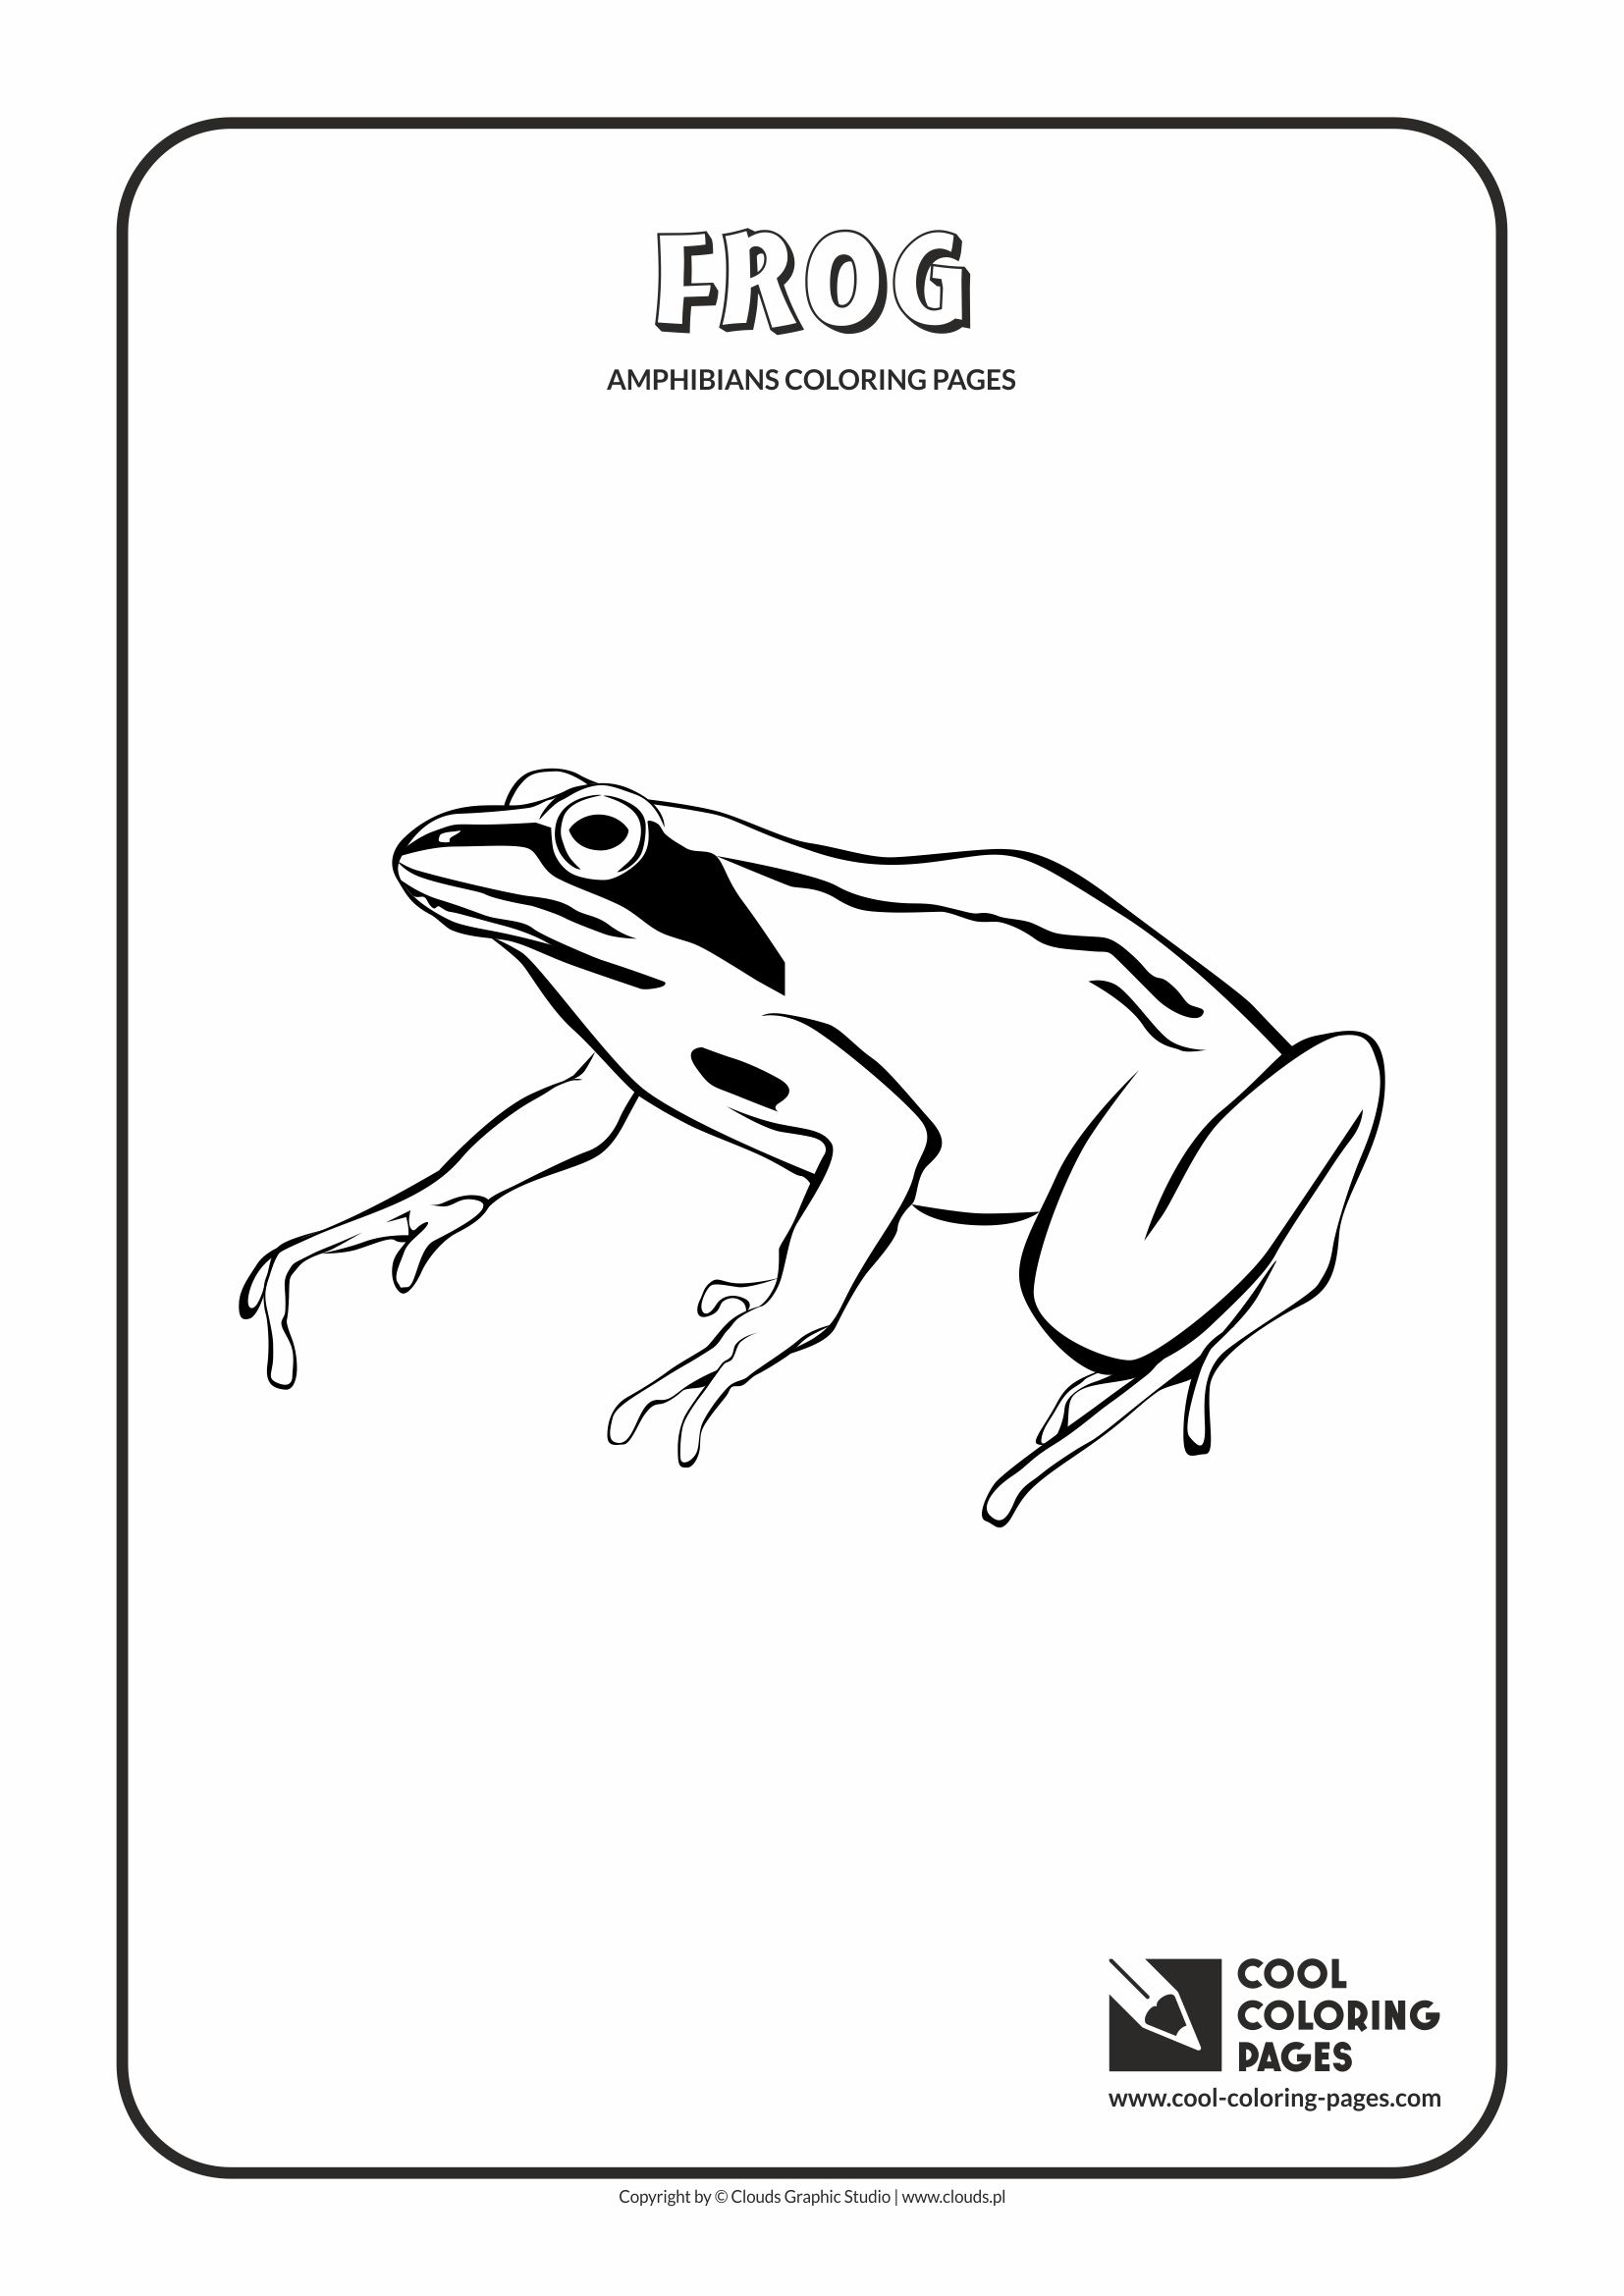 Cool Coloring Pages Amphibians